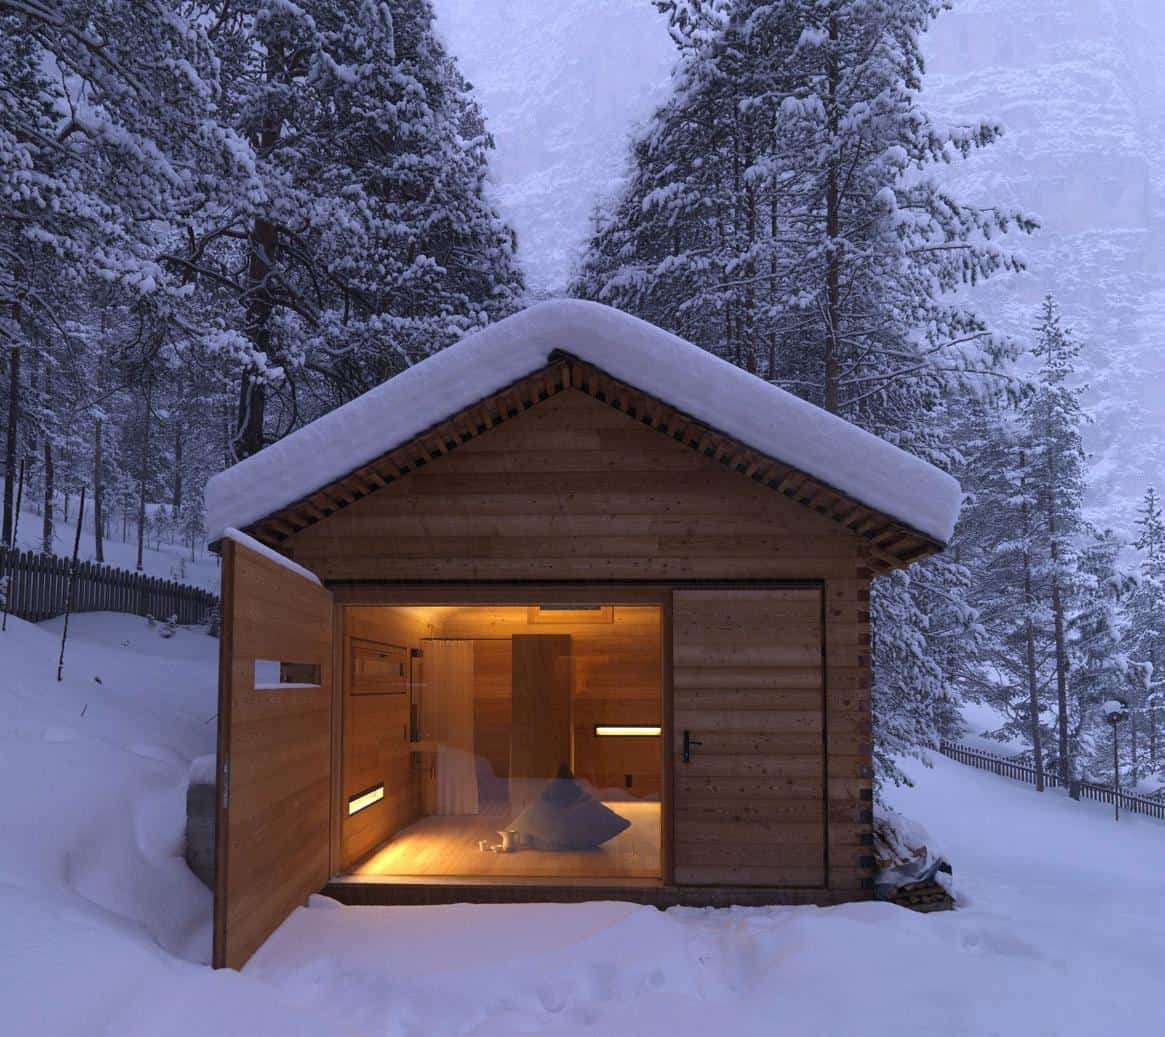 wood flooring for kitchen sink grinder cozy mountain cabin can open up to the elements